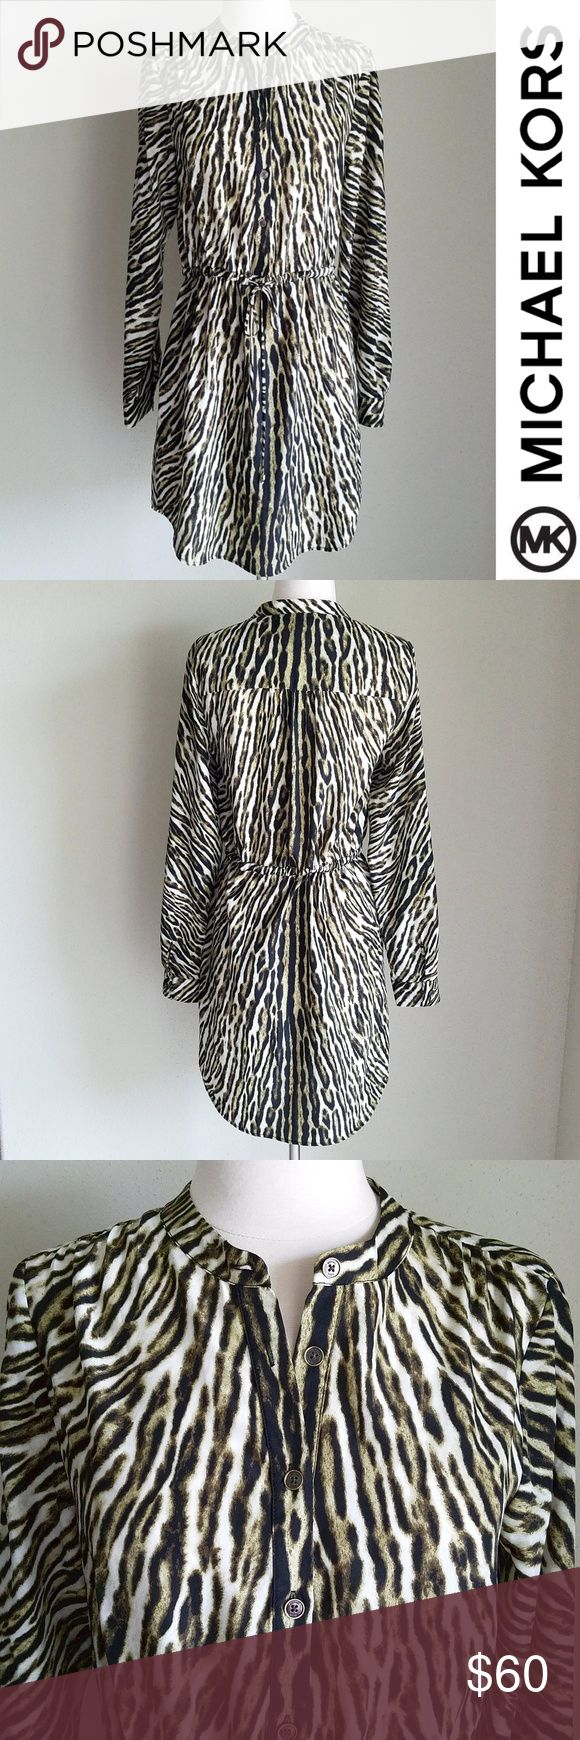 """Michael Kors Olive Green Tiger Animal Print Dress Silky fabric with olive green and white zebra/tiger animal print. Drawstring elastic waist with front tie. Curved hem goes up on sides. Long sleeves. Front button closure. Dry clean only. 100% polyester  EXCELLENT used condition  Length (shoulder to bottom hem)- 33""""-35"""" (curved hem), Bust- 36"""", Waist (without elastic stretched or belt cinched)- 32"""", Hip- 41"""", Sleeve (shoulder seam to cuff)- 25"""" Michael Kors Dresses Mini"""